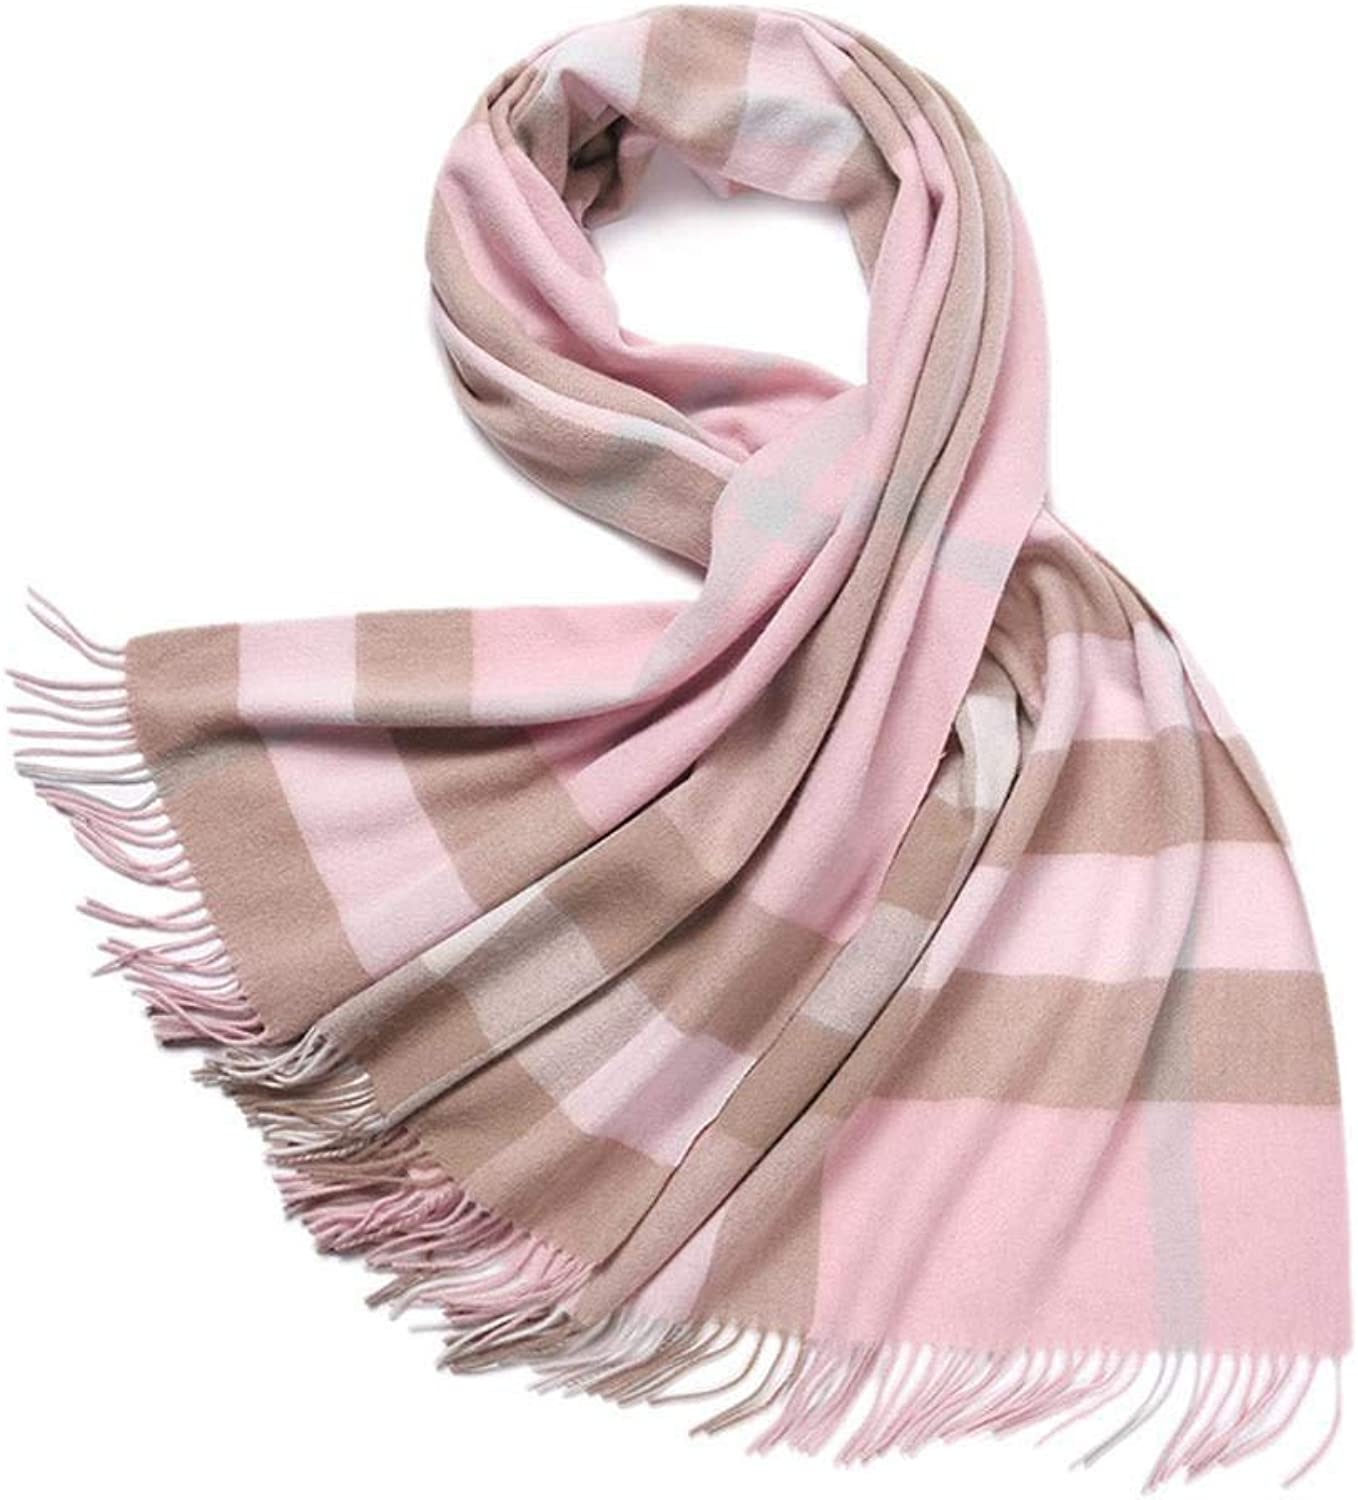 Gquan Fashion Scarf Autumn Winter Thickening Fashion Shawl Scarf Warm Lattice widening Lady's Scarf Shawl